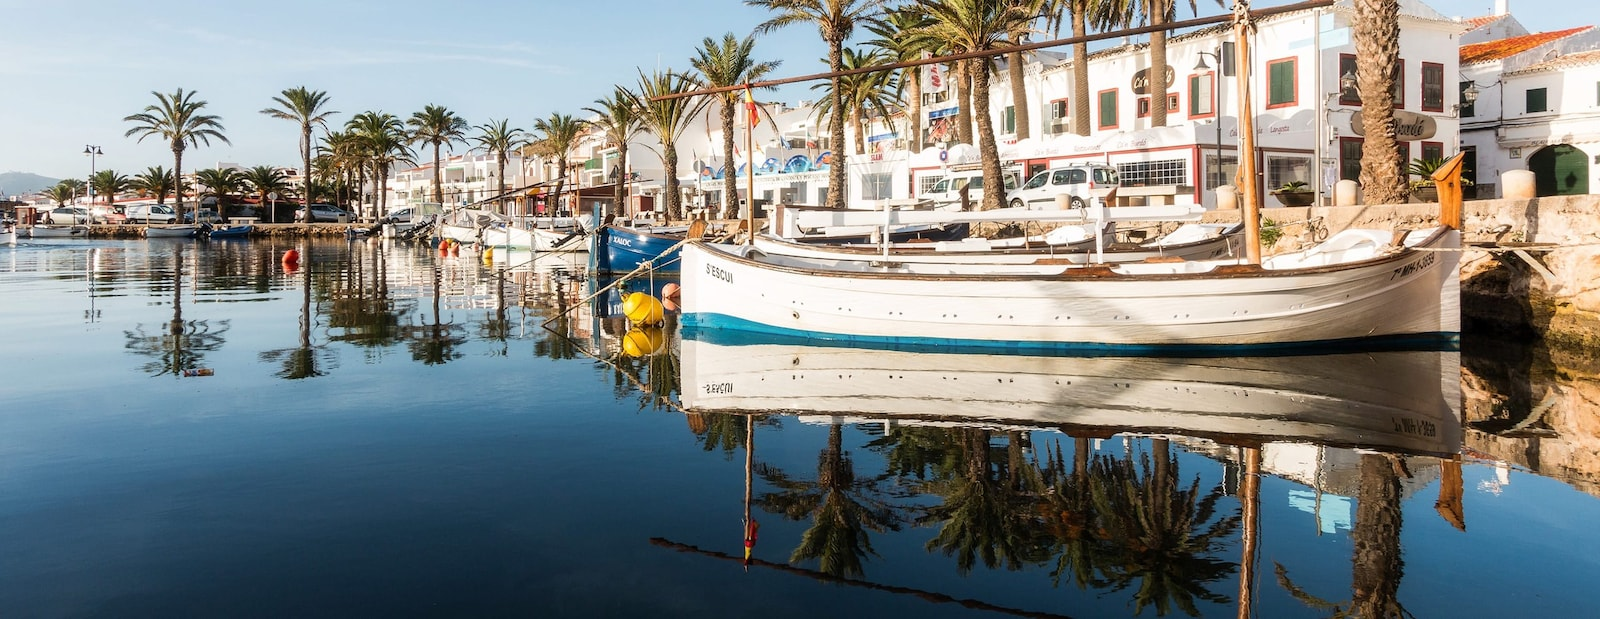 Vacation rentals in Marina de Son Ganxo